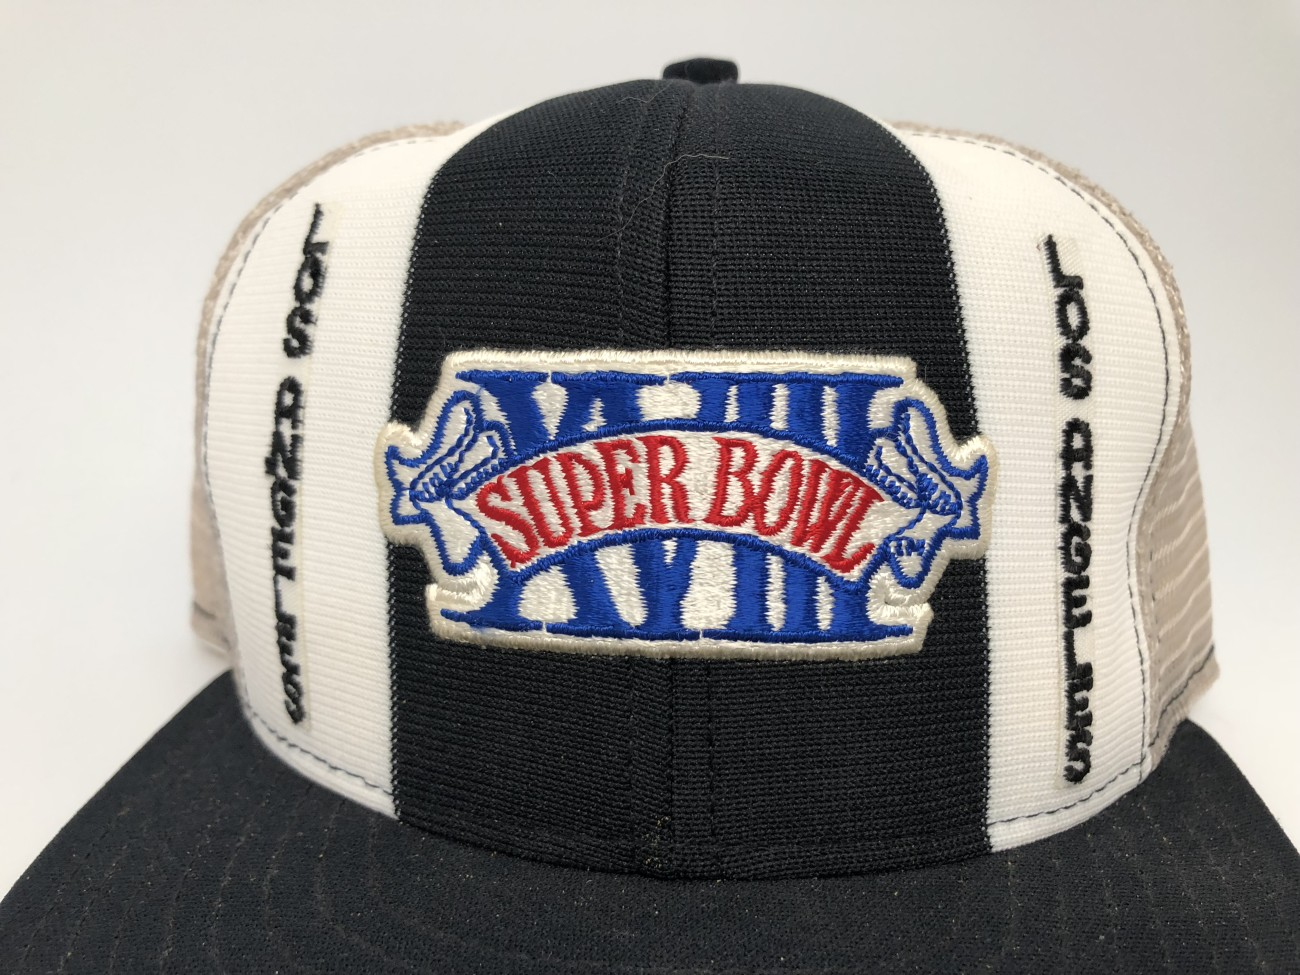 4d718c150df 1984 Super Bowl XVIII mesh snapback hat los angeles radiers washington  redskins